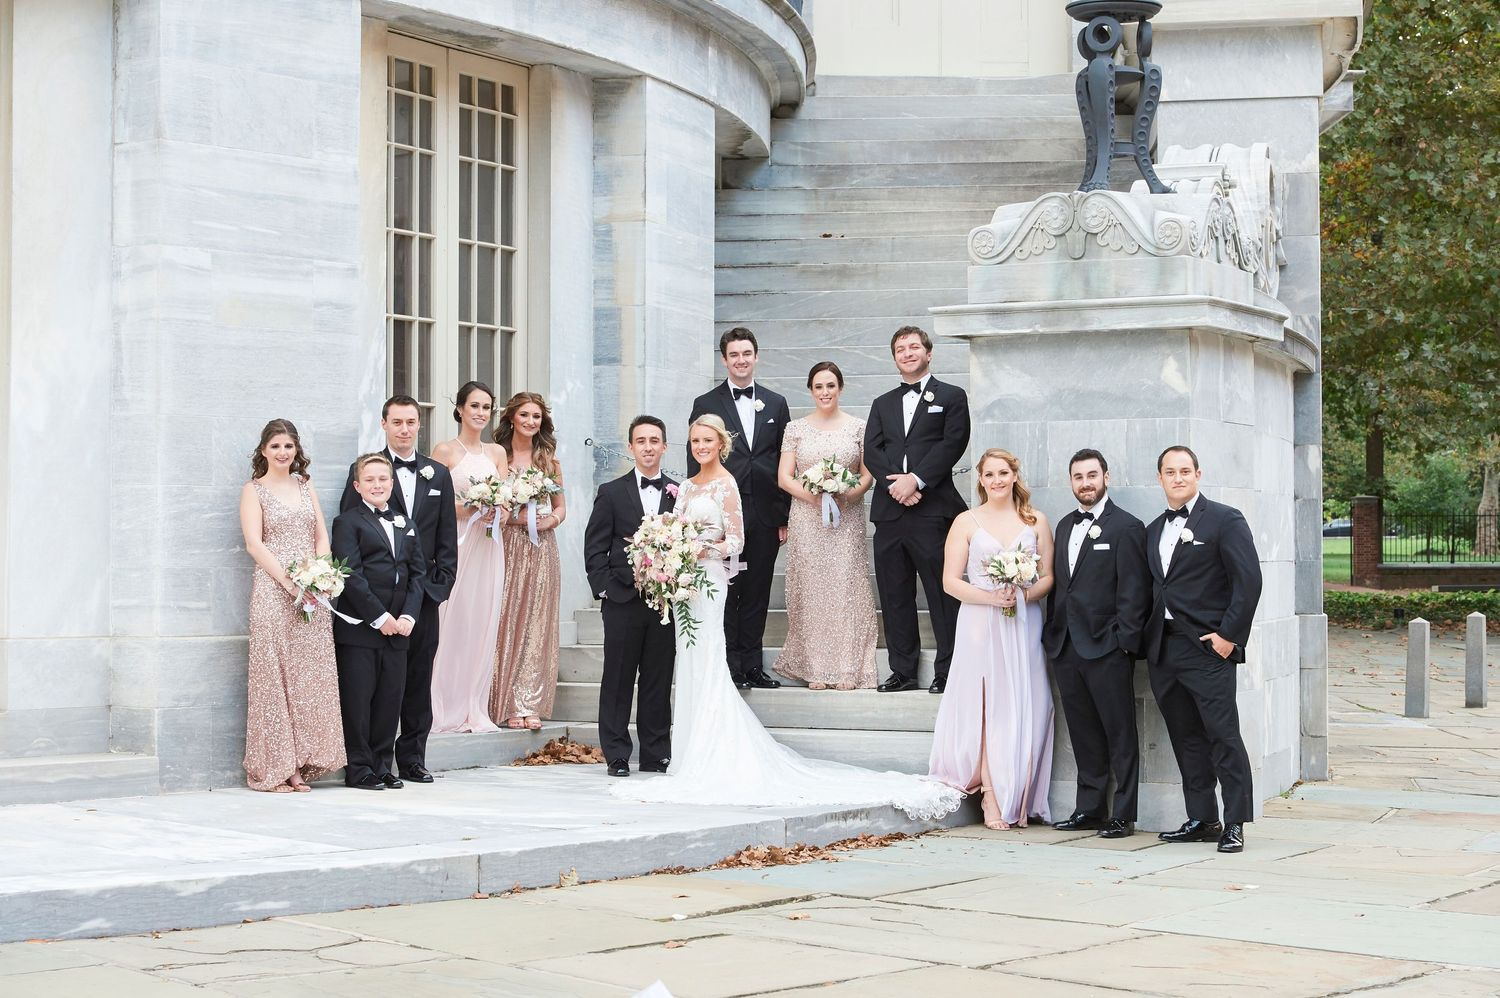 full bridal party portrait at merchant exchange building in philadelphia wedding photo